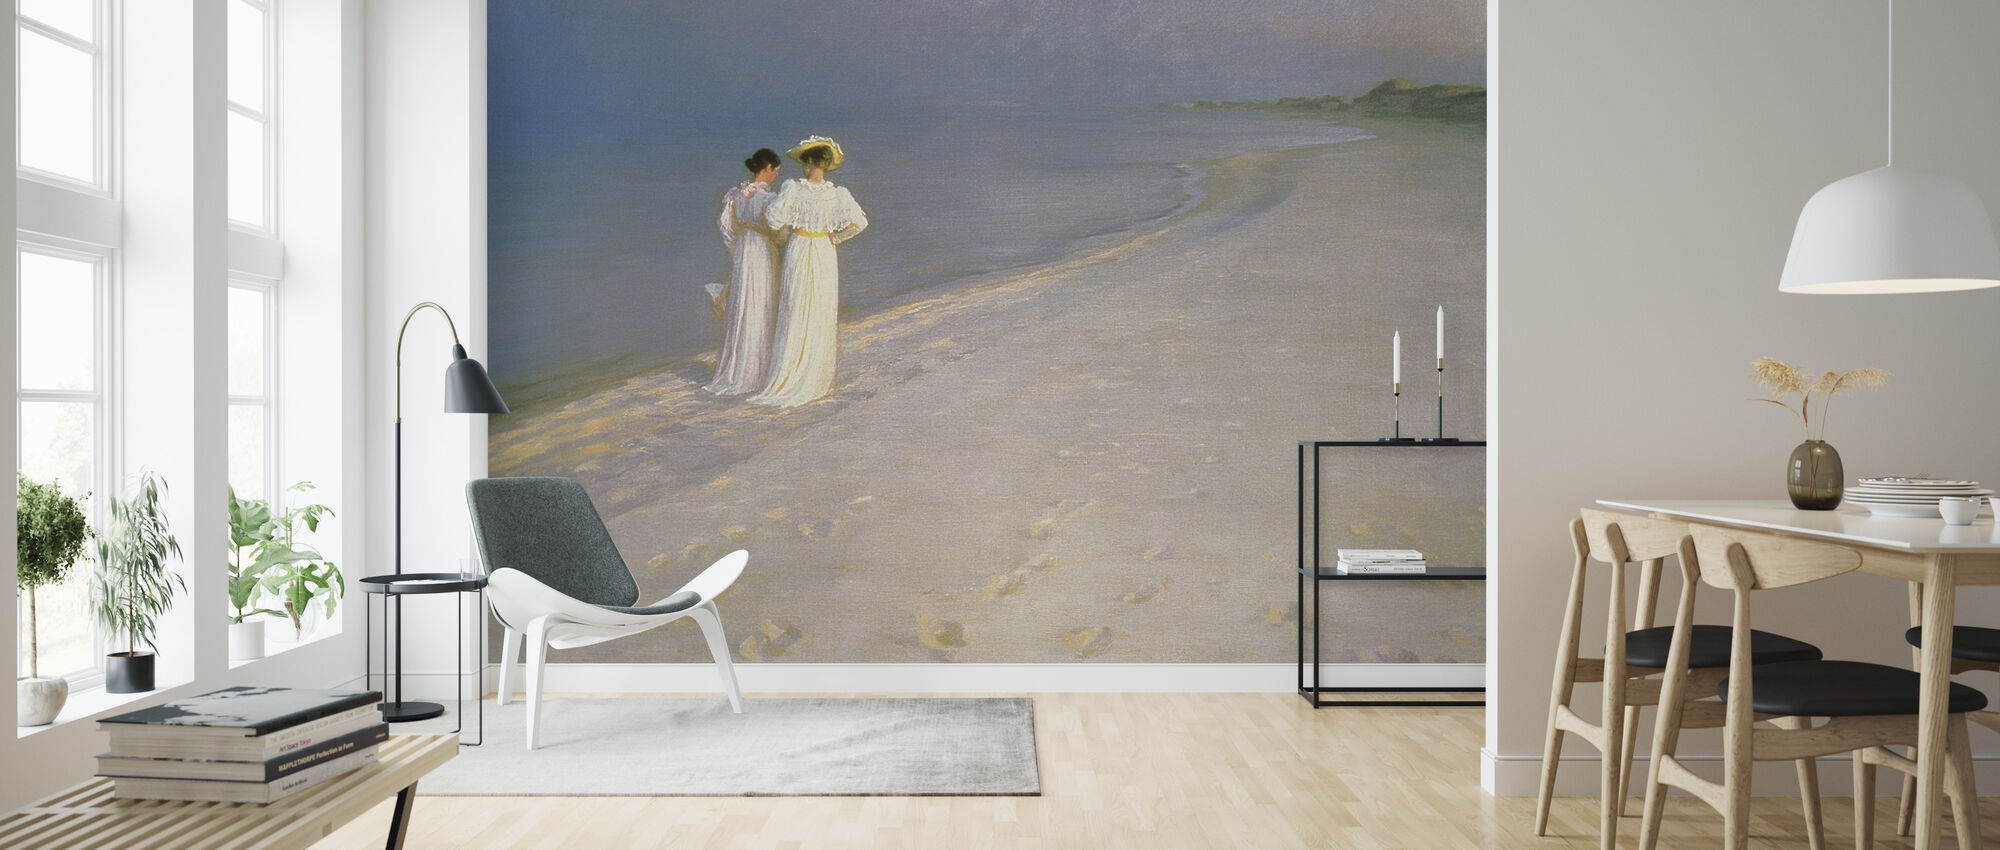 Summer Evening on the Skagen Southern Beach with Anna Ancher and Marie Kroyer - Peder Severin Kroyer - Wallpaper - Living Room